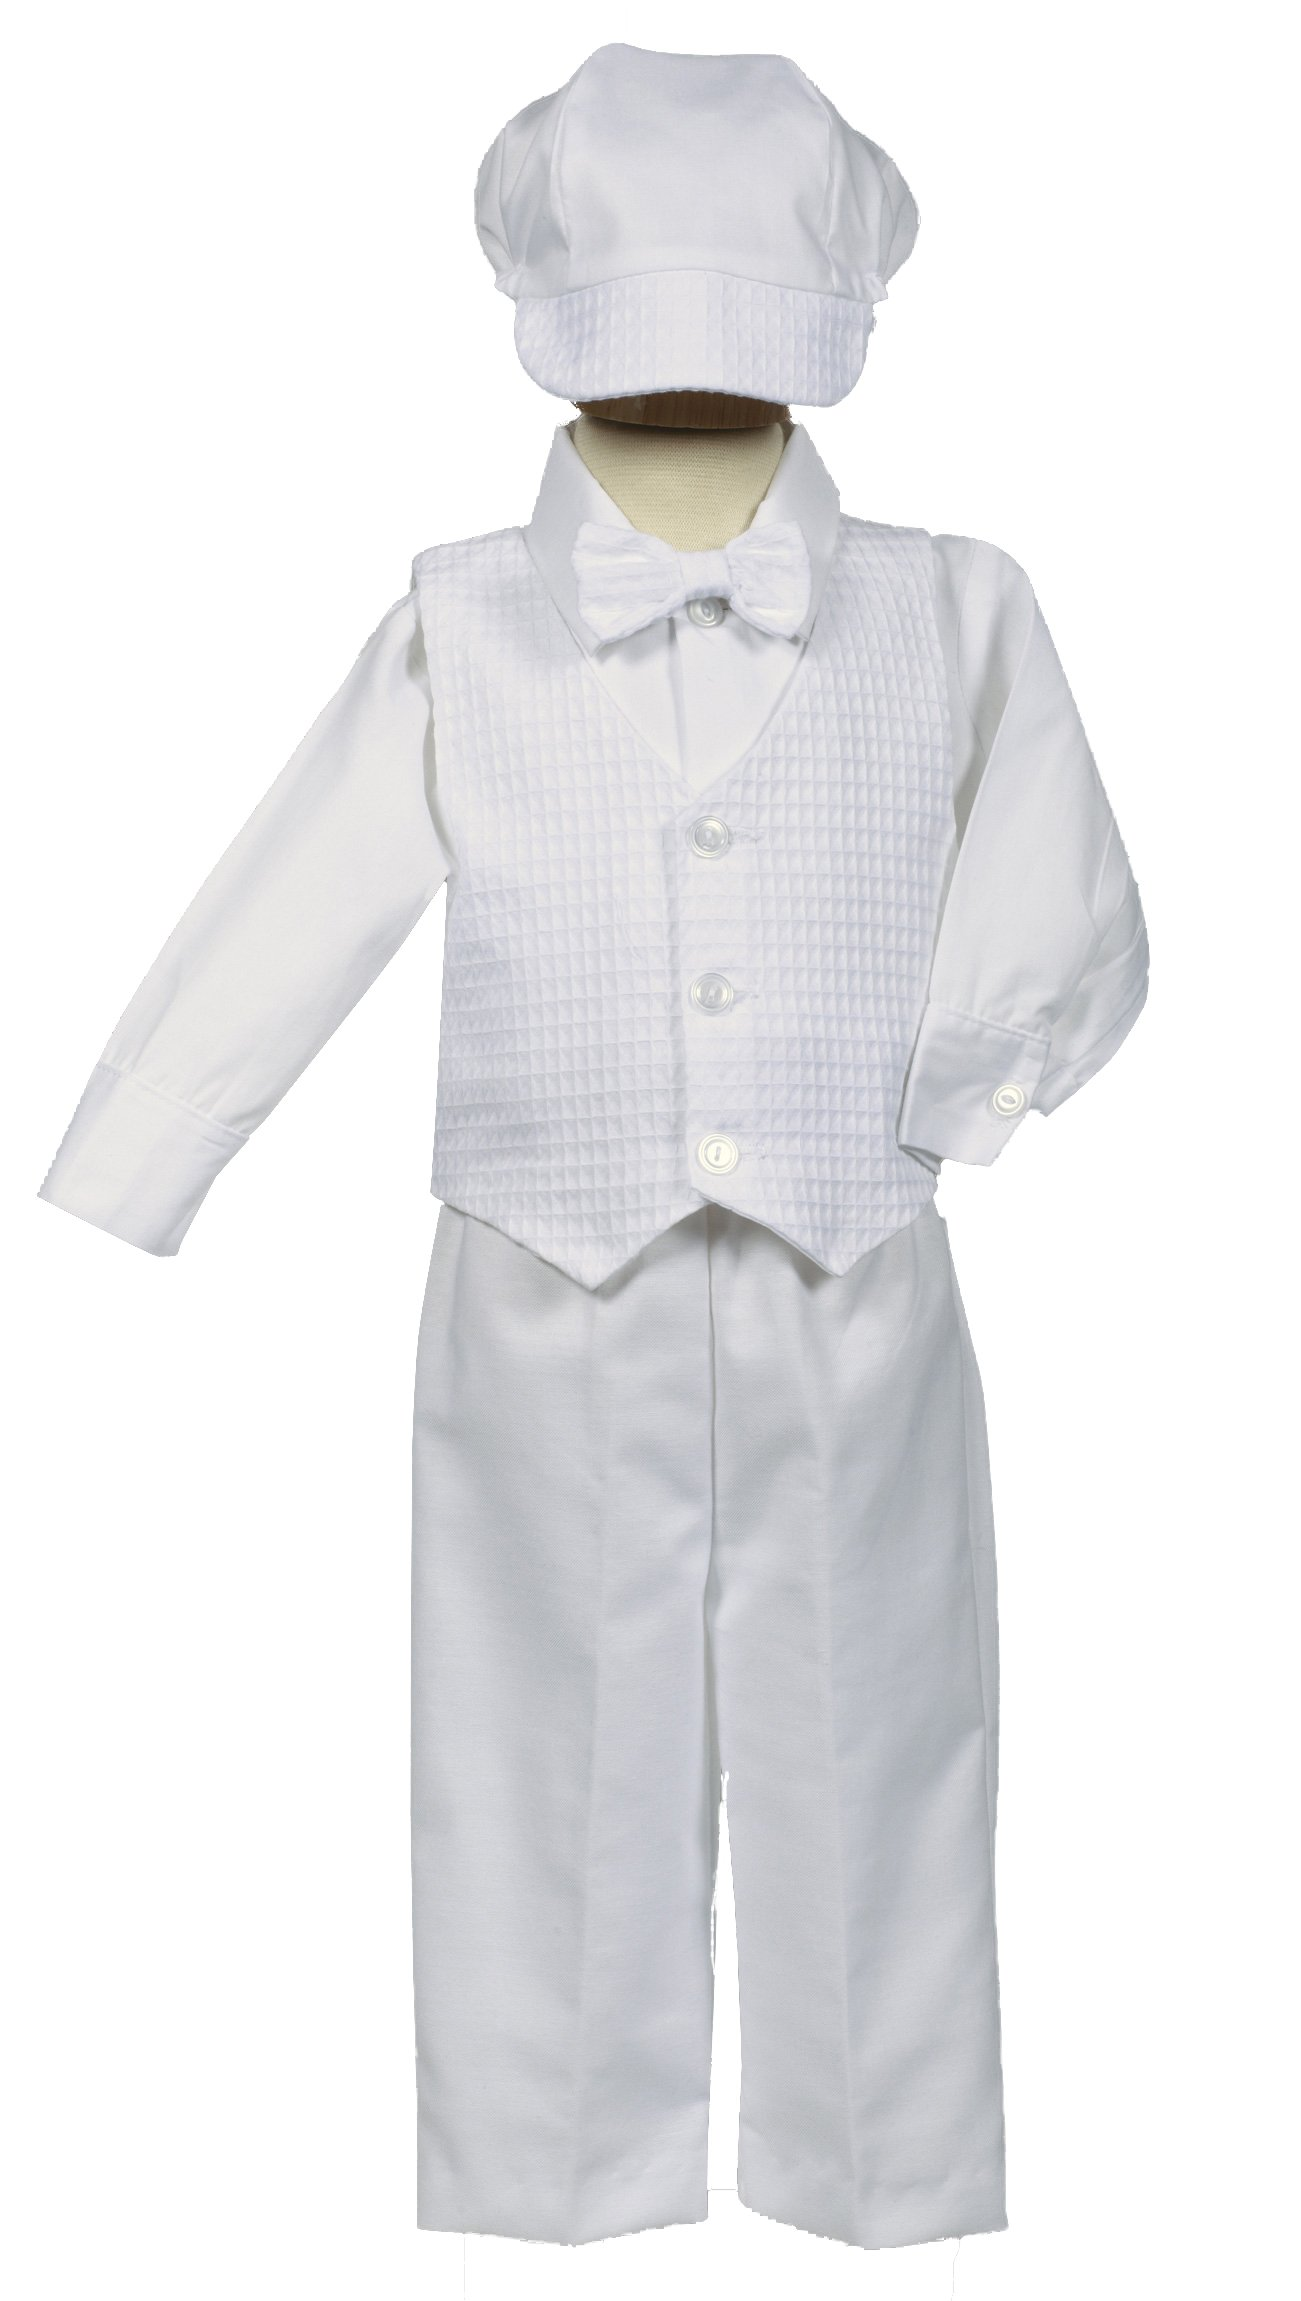 Nathan White Poly-Cotton Weaved 5Pc Vest, Bow, Hat, Shirt and Pant Set - Size 2T by Swea Pea & Lilli